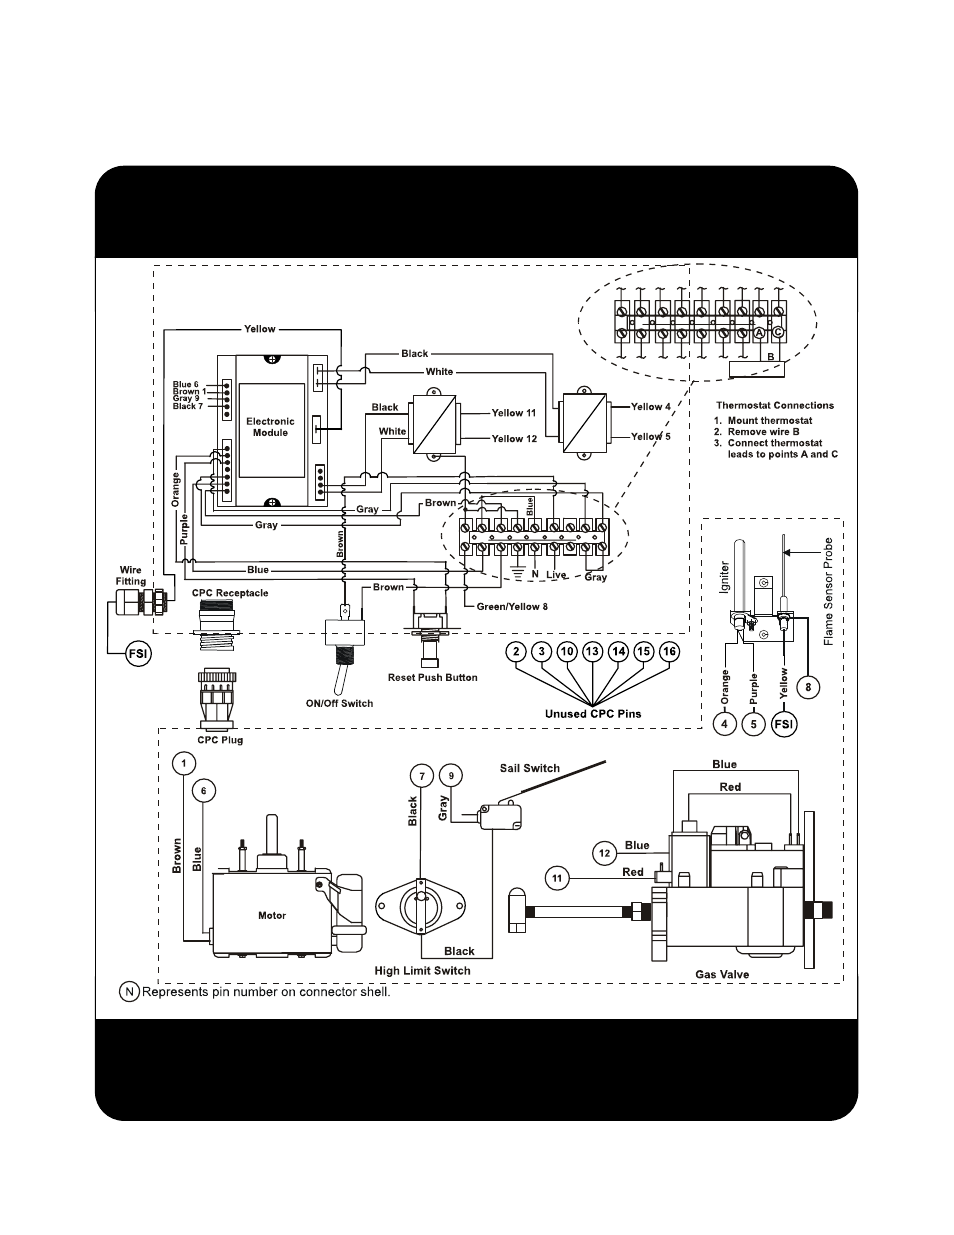 Forced Air Wiring Diagram List Of Schematic Circuit 1959 Fordi6 Component And Hired Hand Super Savers Rh Manualsdir Com Thermostat